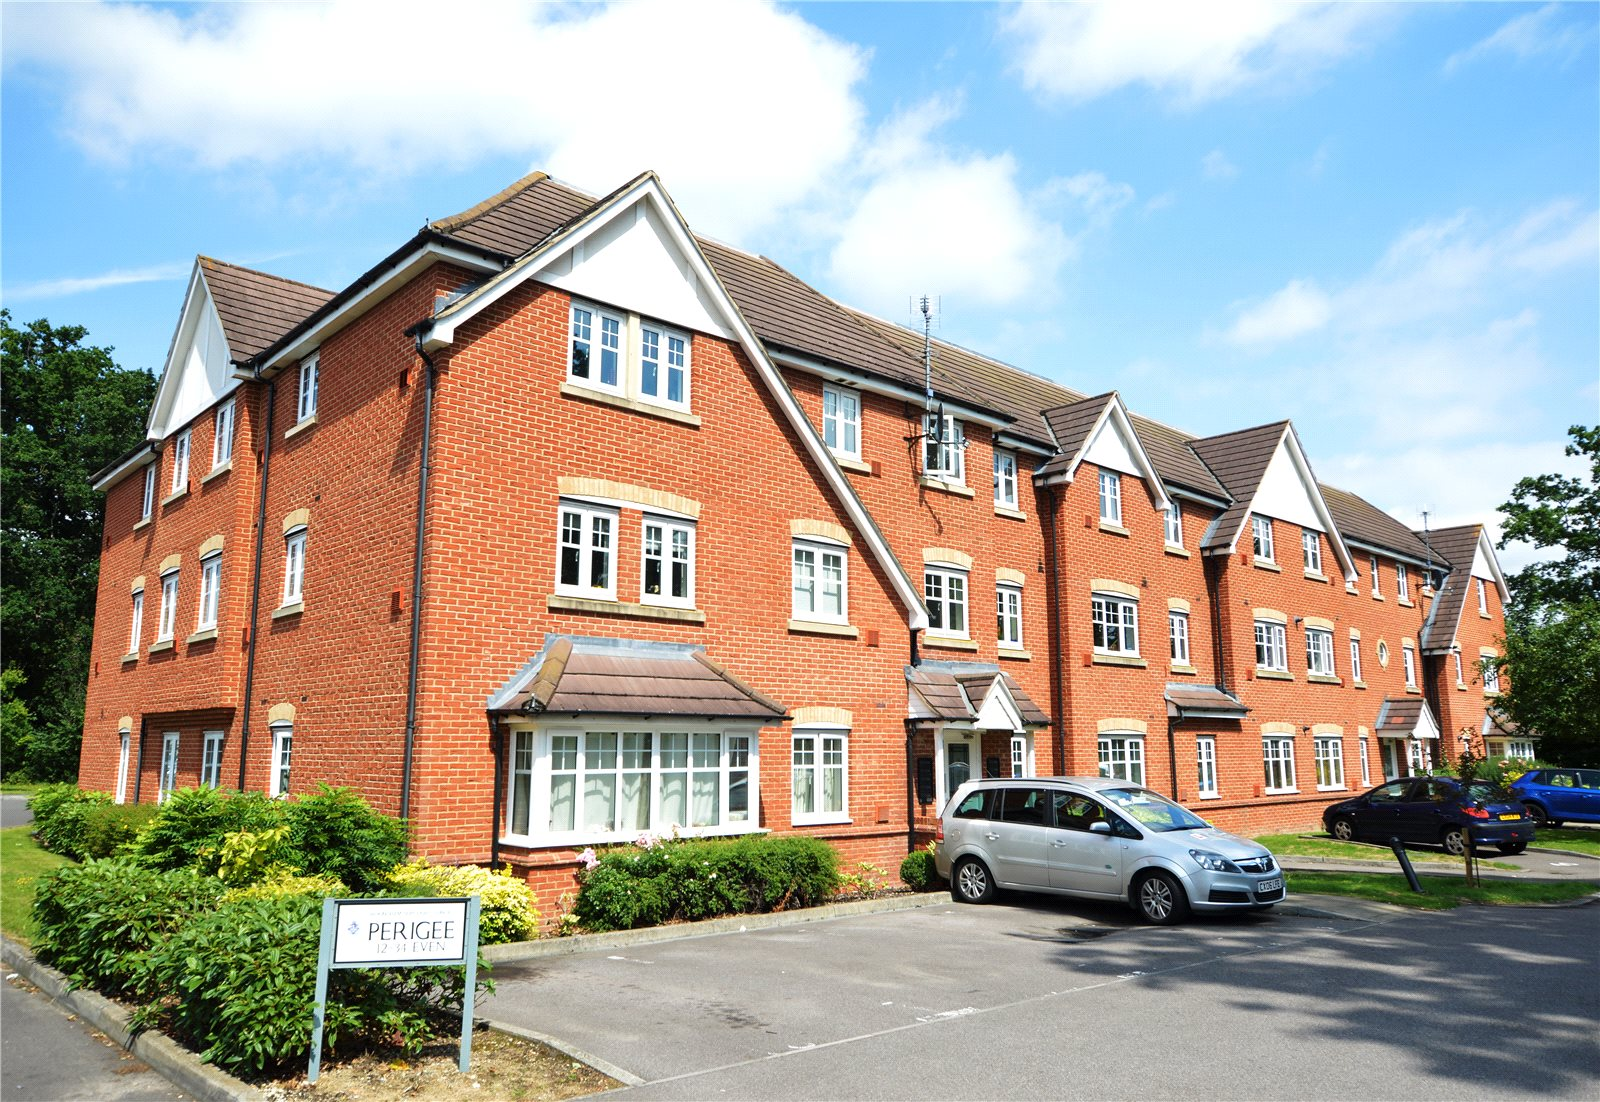 2 Bedrooms Apartment Flat for sale in Perigee, Reading, Berkshire, RG2